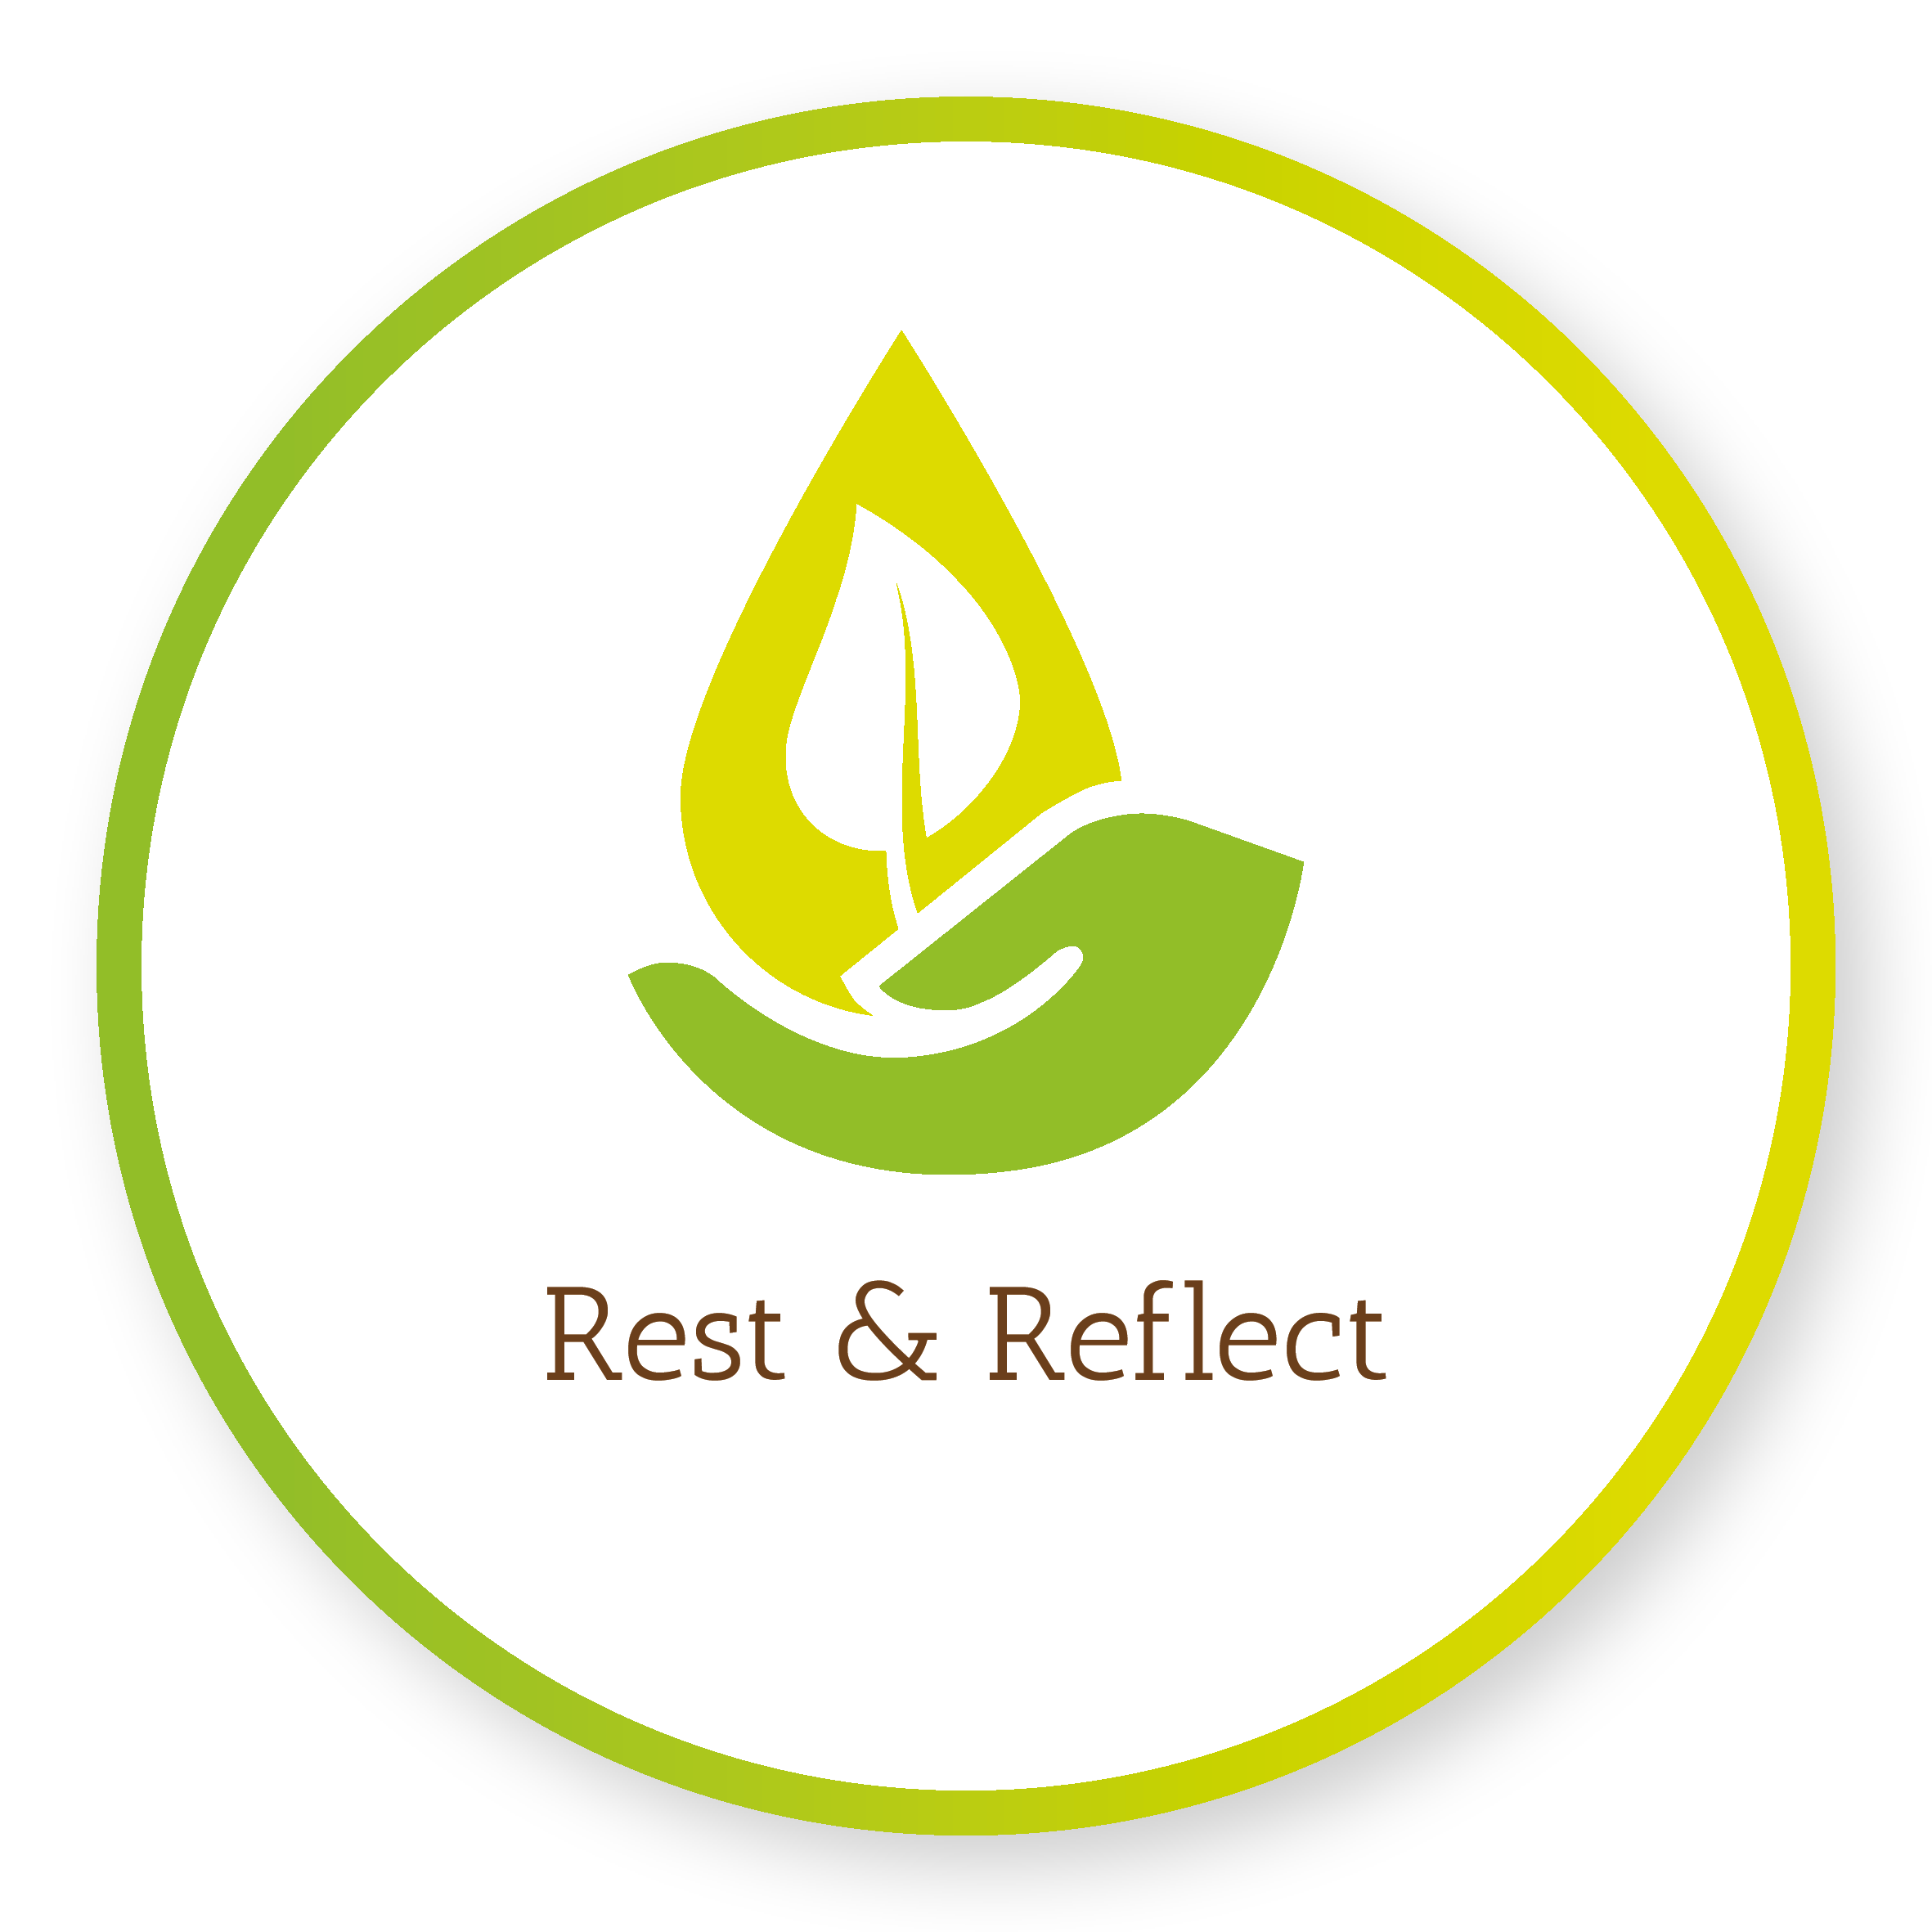 Rest & Reflect